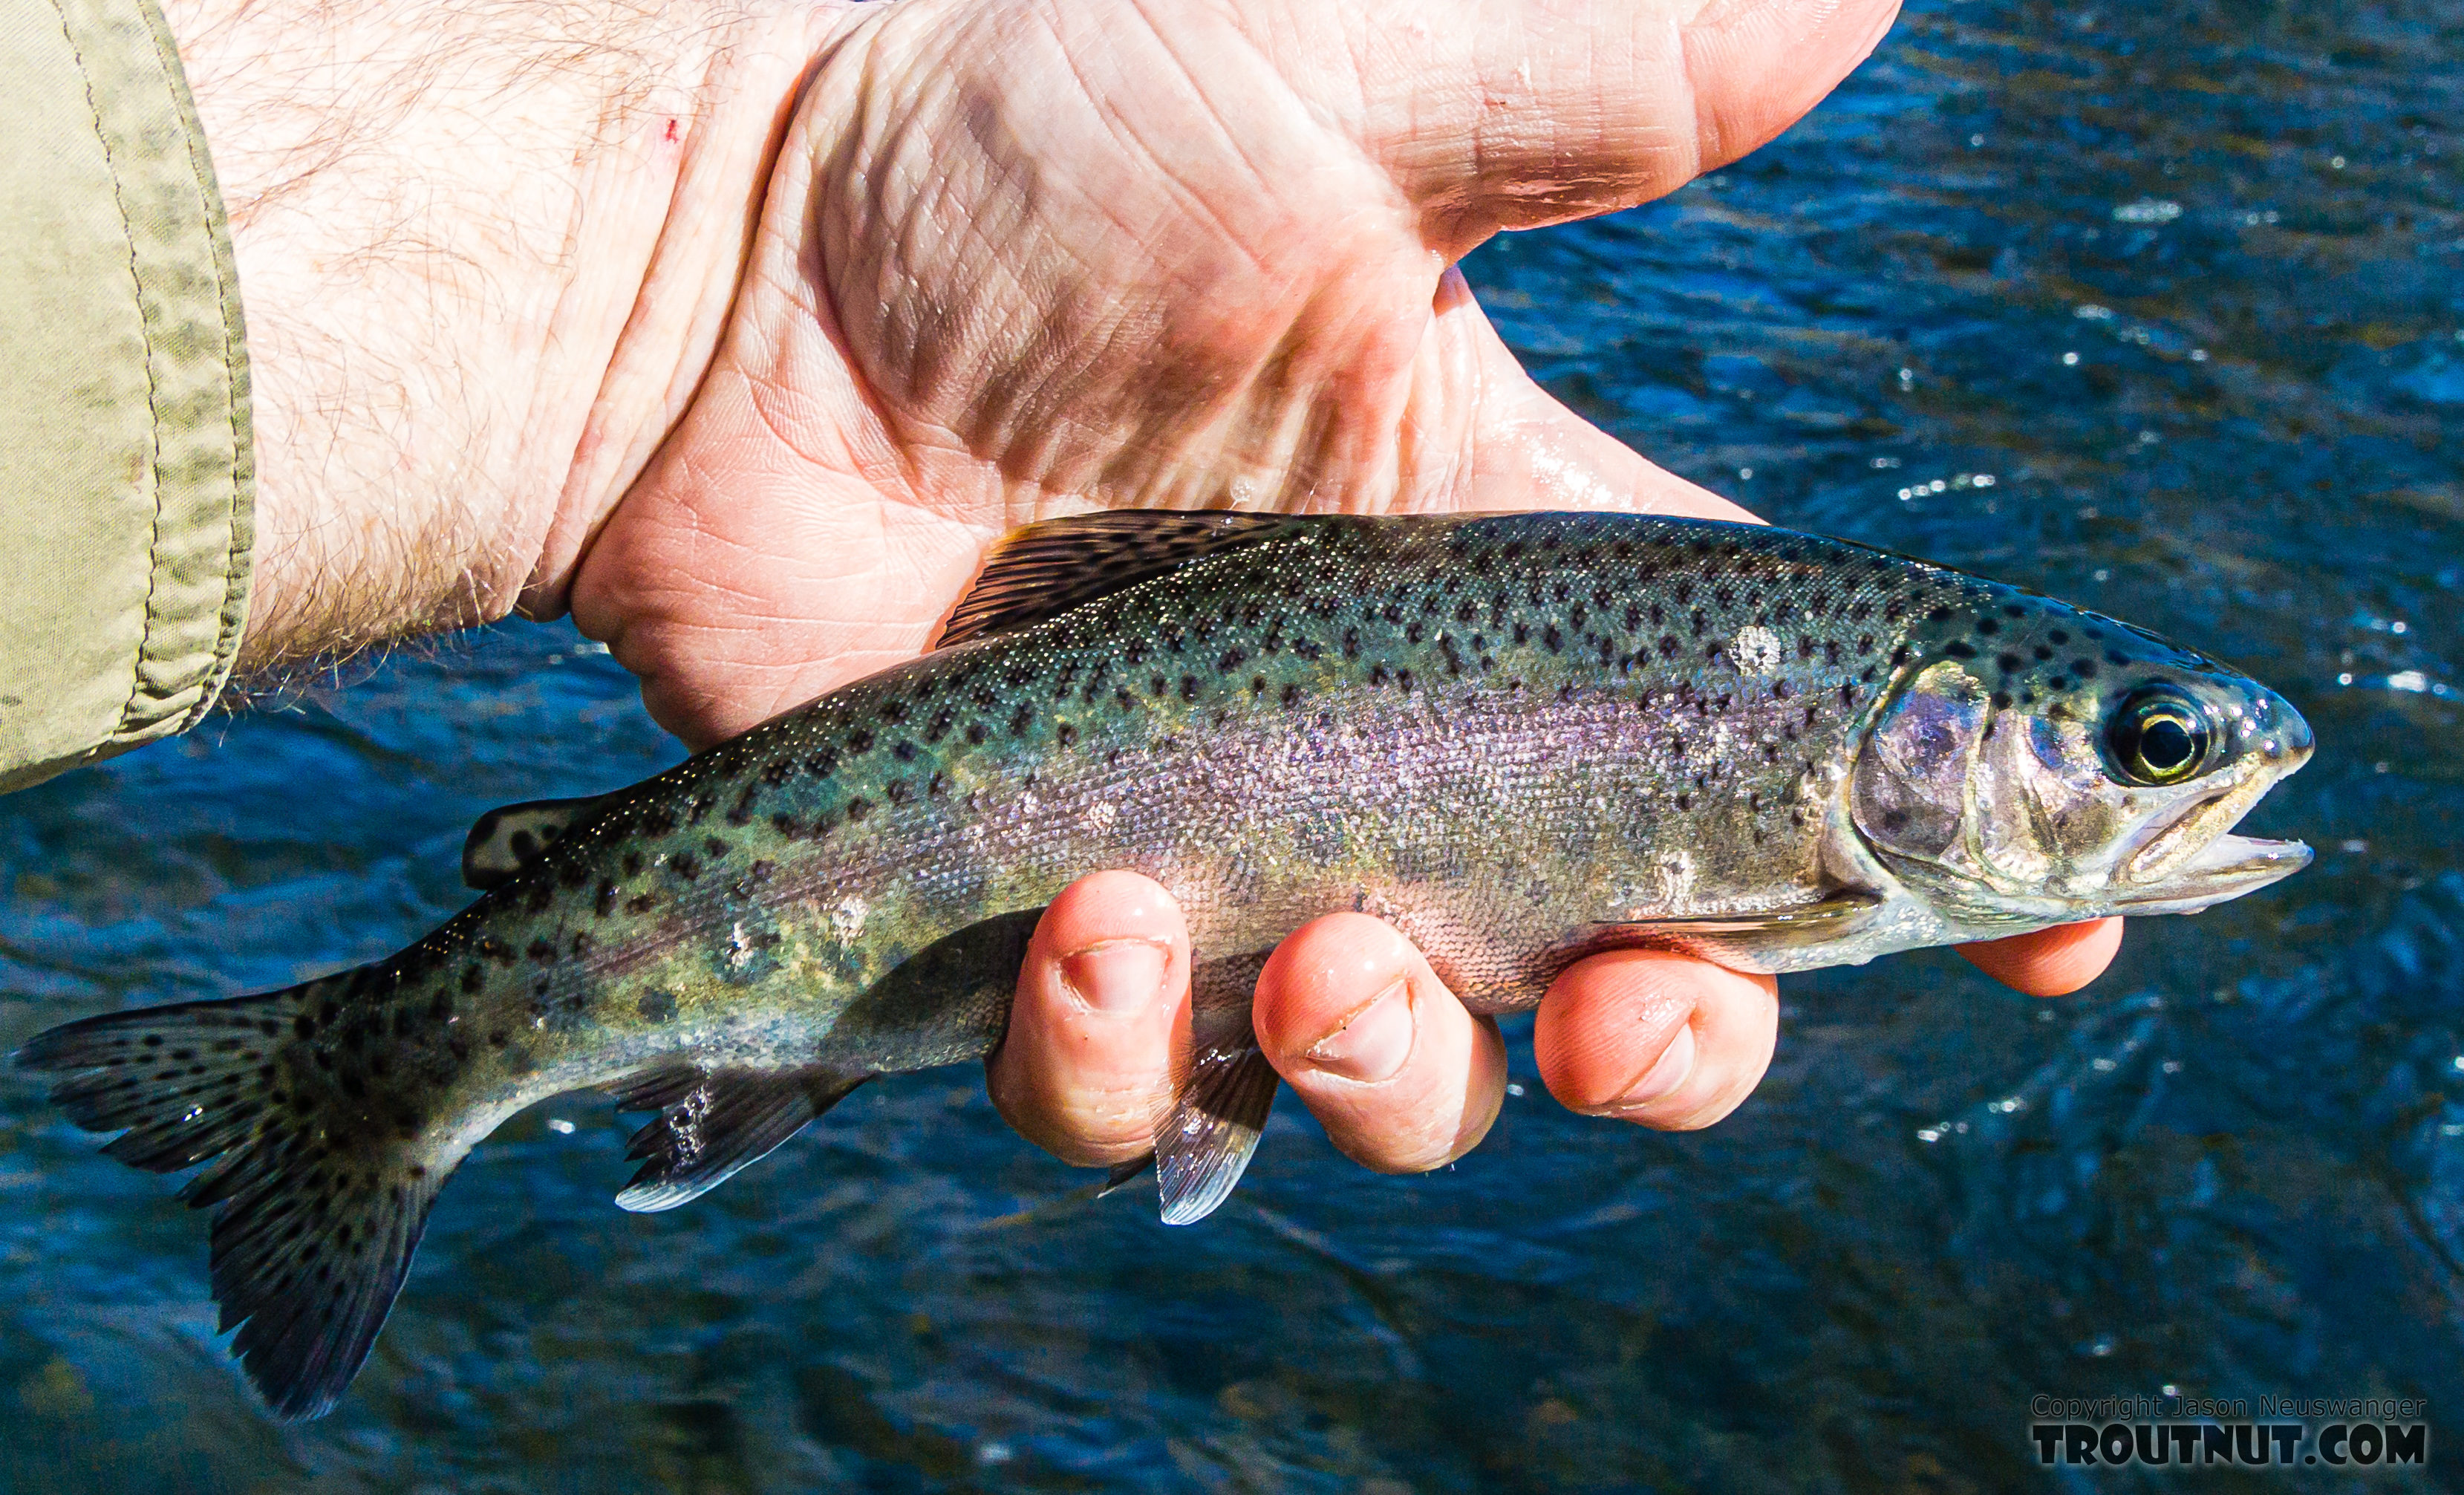 A typical rainbow for the day. From the Yakima River in Washington.